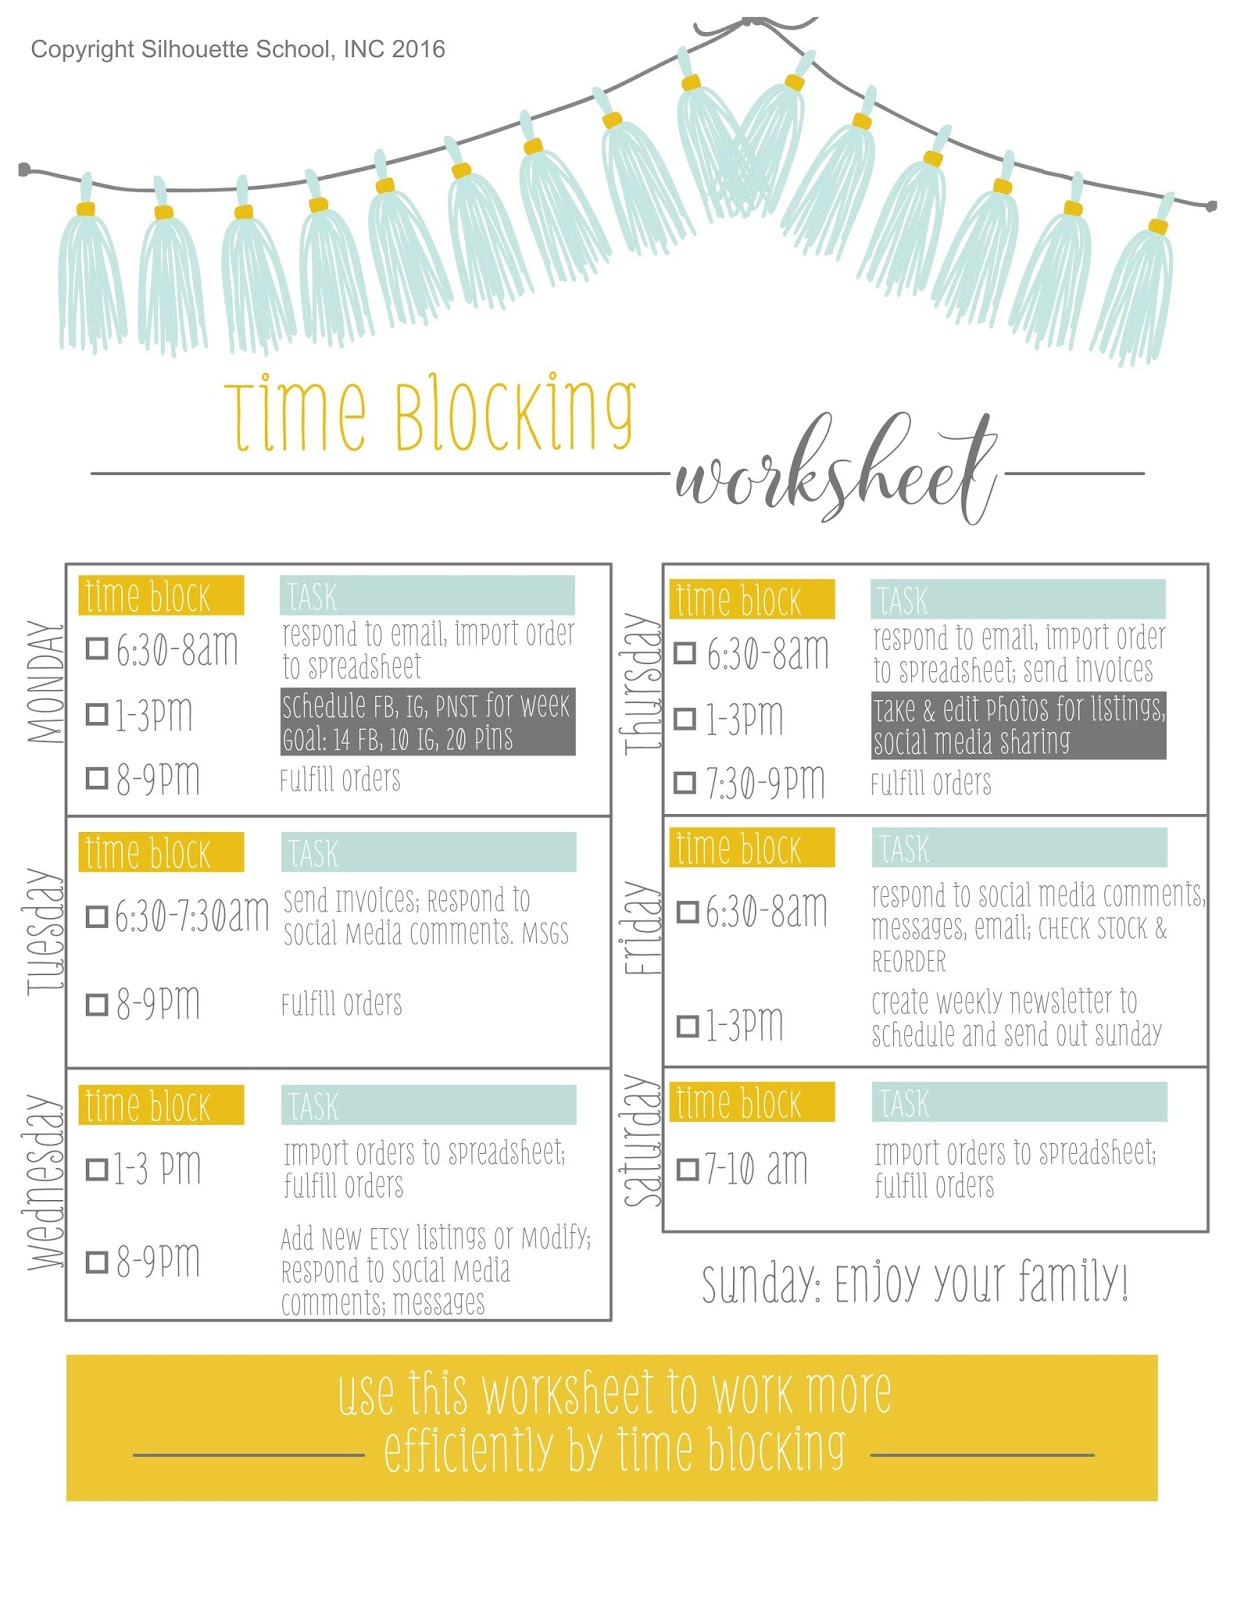 silhouette cameo business time management time blocking